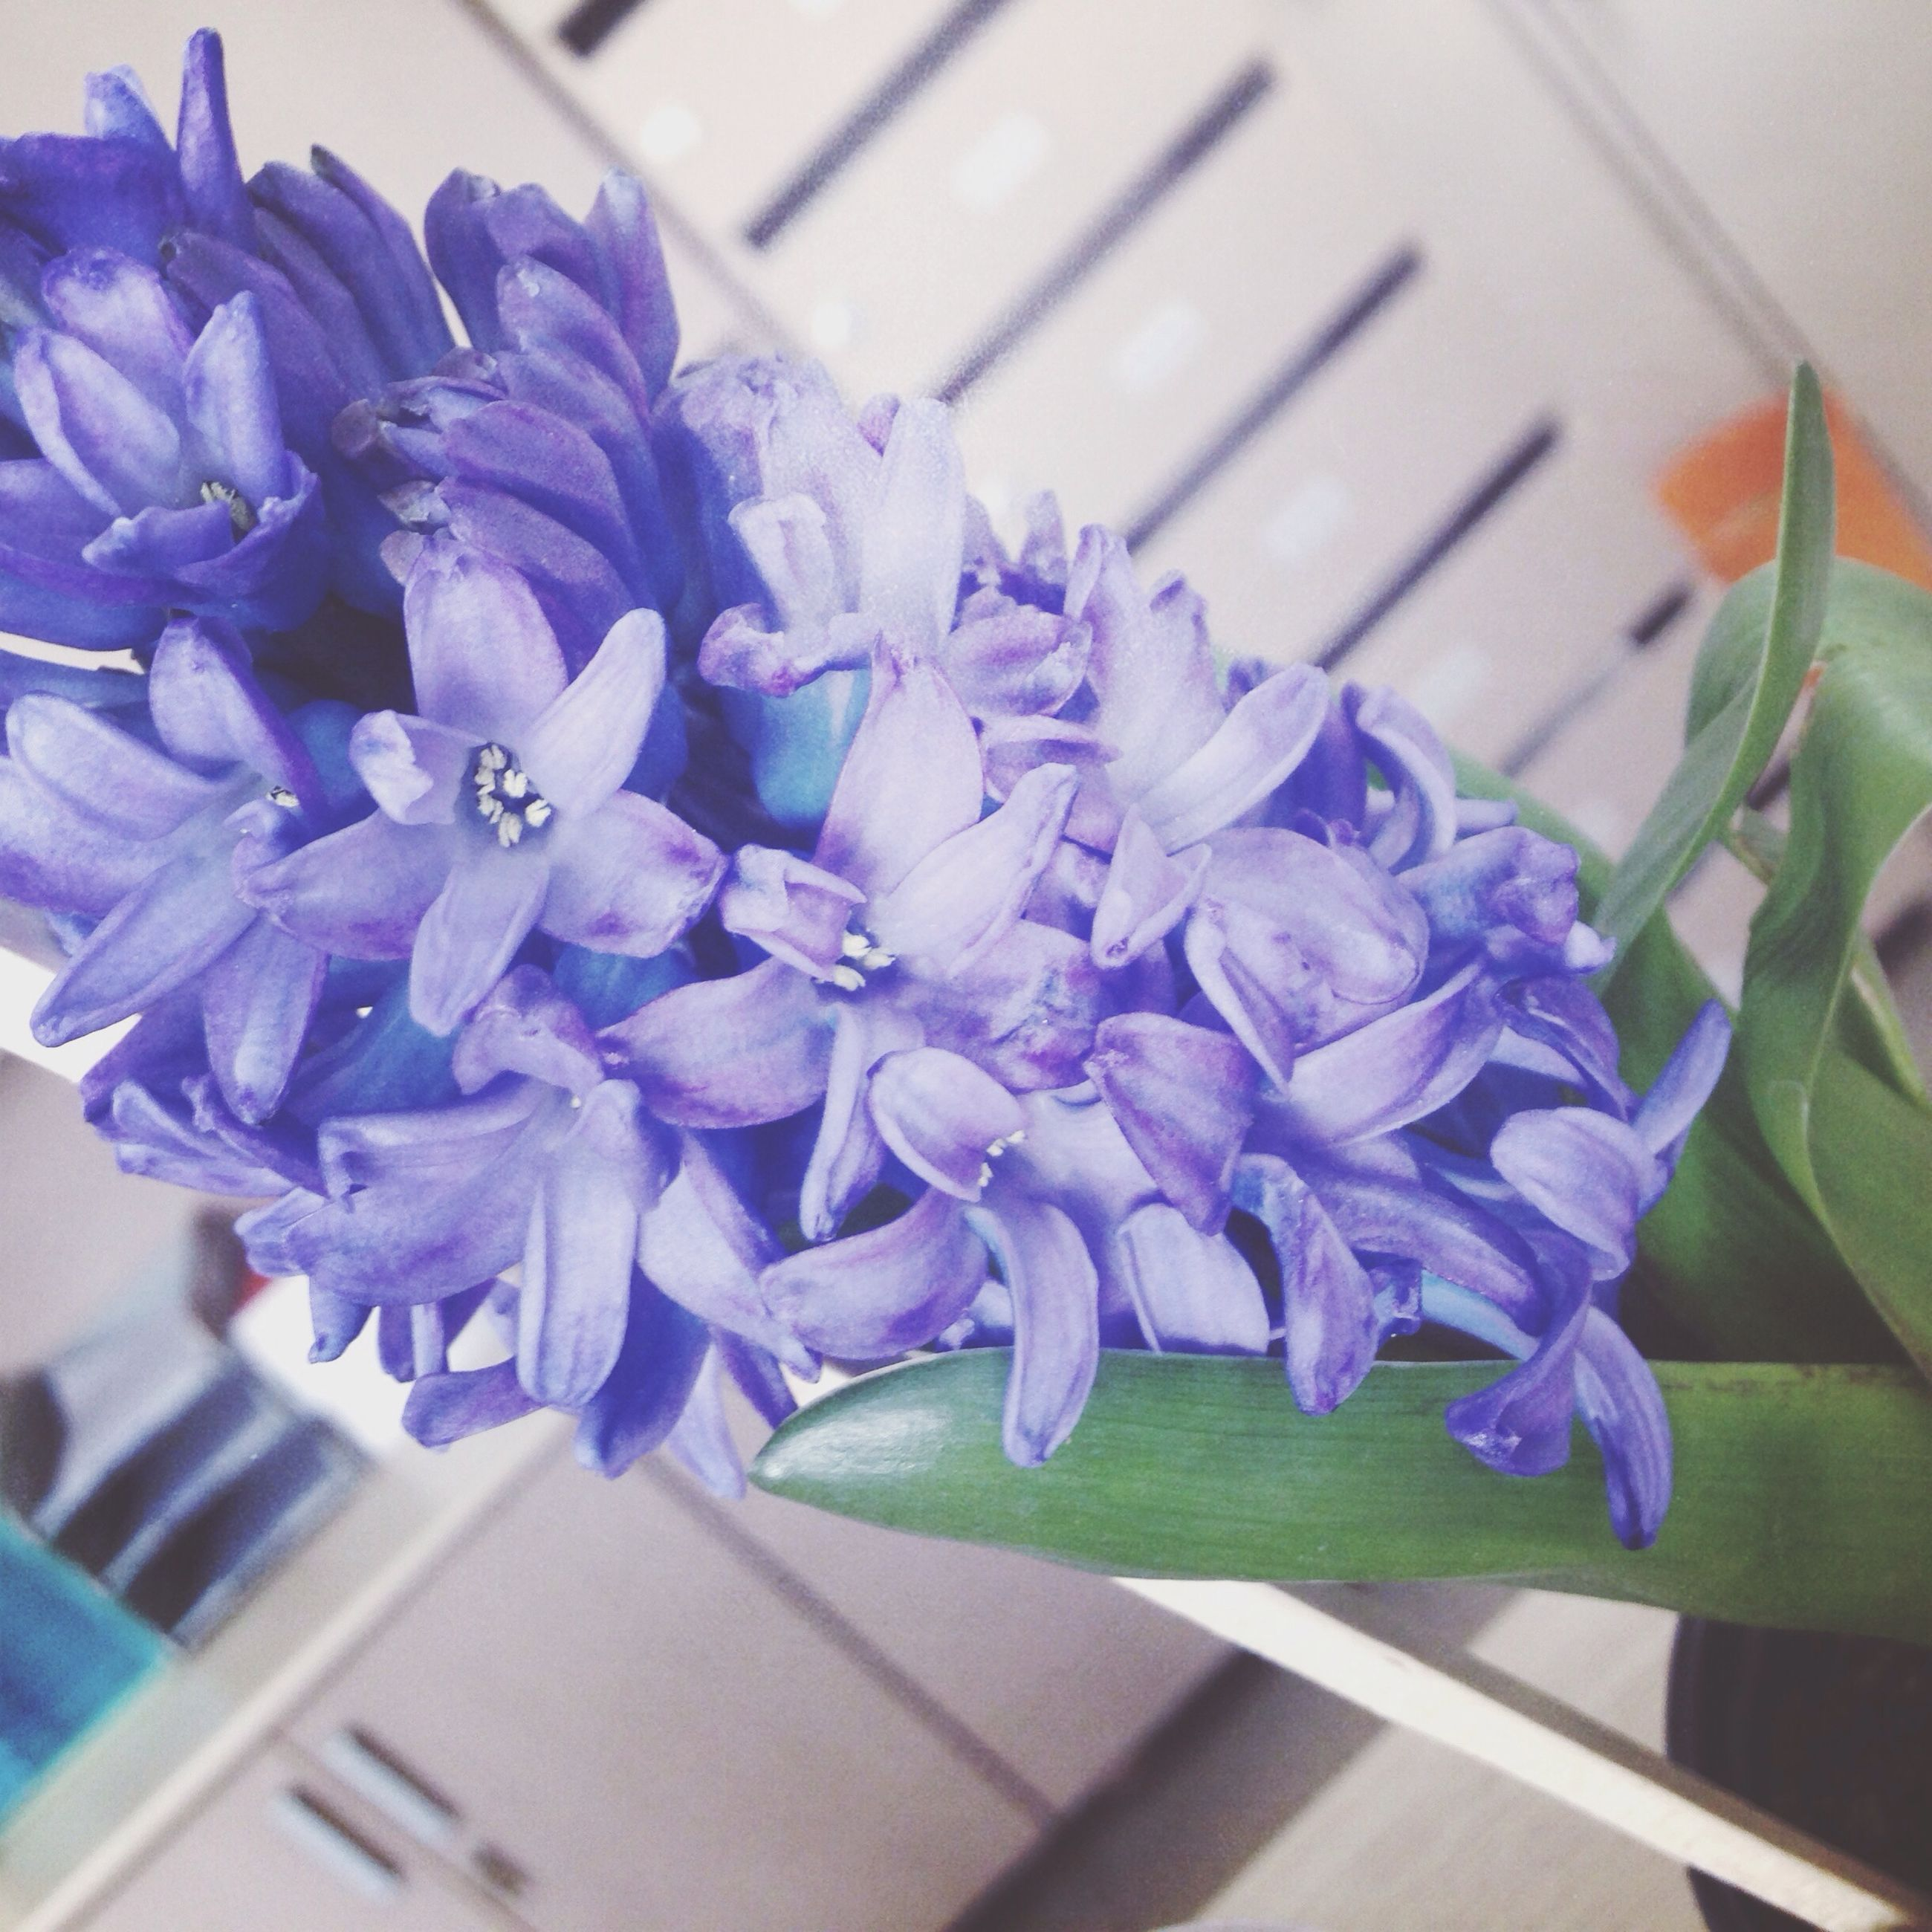 purple, flower, indoors, petal, fragility, close-up, table, freshness, blue, high angle view, flower head, focus on foreground, no people, still life, beauty in nature, selective focus, nature, wood - material, growth, plant